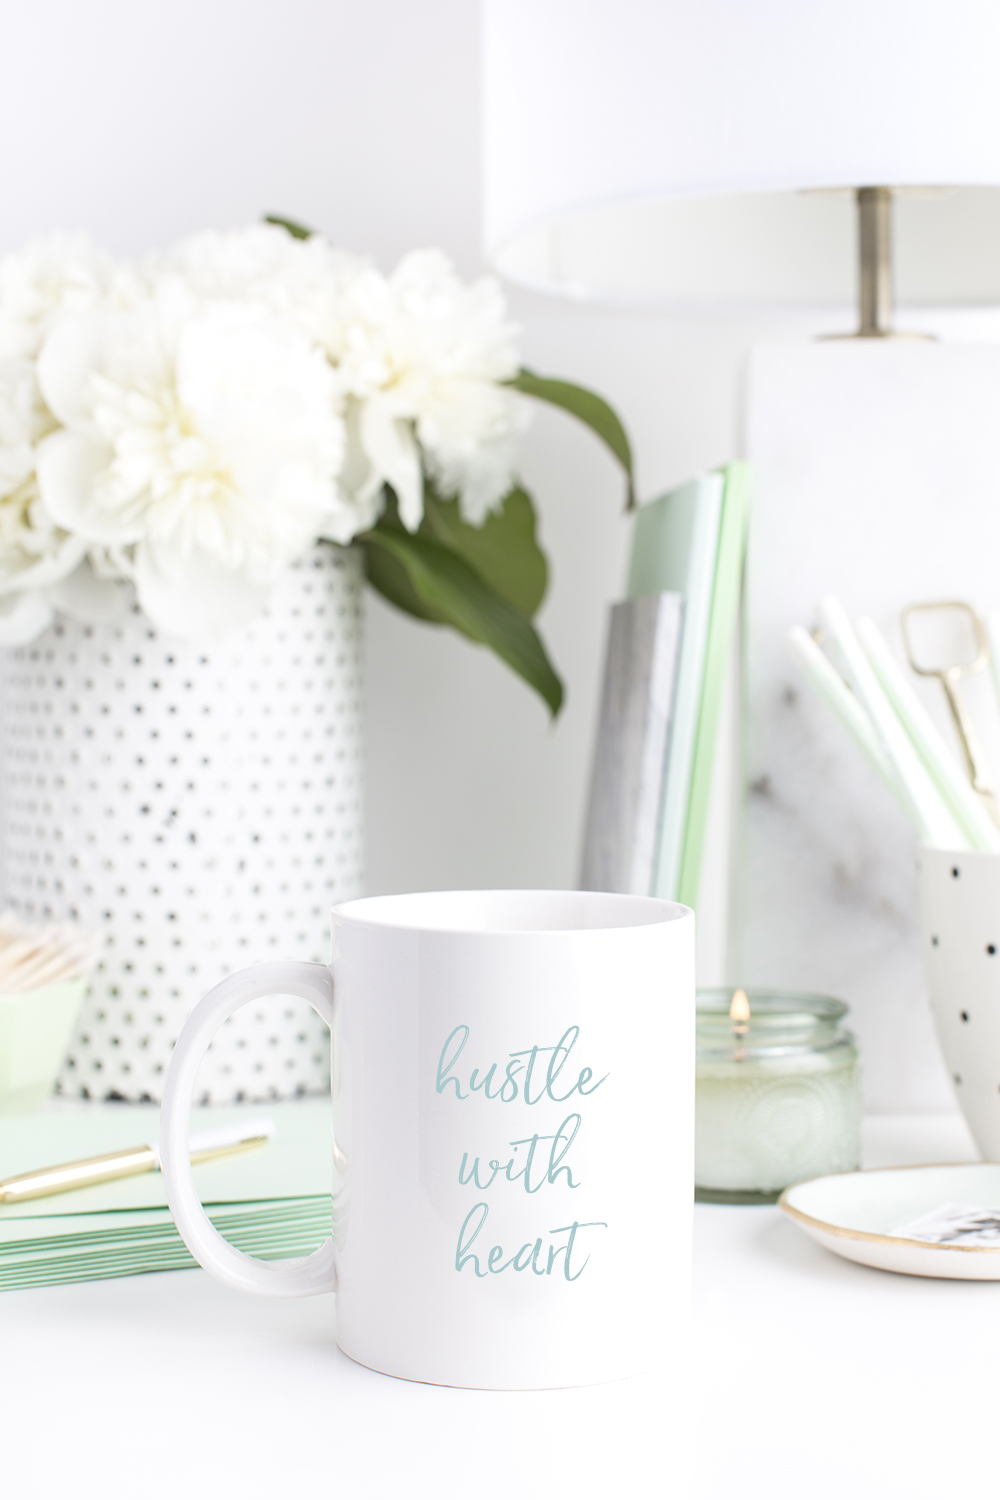 Being on the road to full-time entrepreneur my priorities shifted and I put myself at the bottom of the list - something had to change. Today, I'm sharing real ways to incorporate these self-care tips into your daily routine so you can continue to hustle with heart!